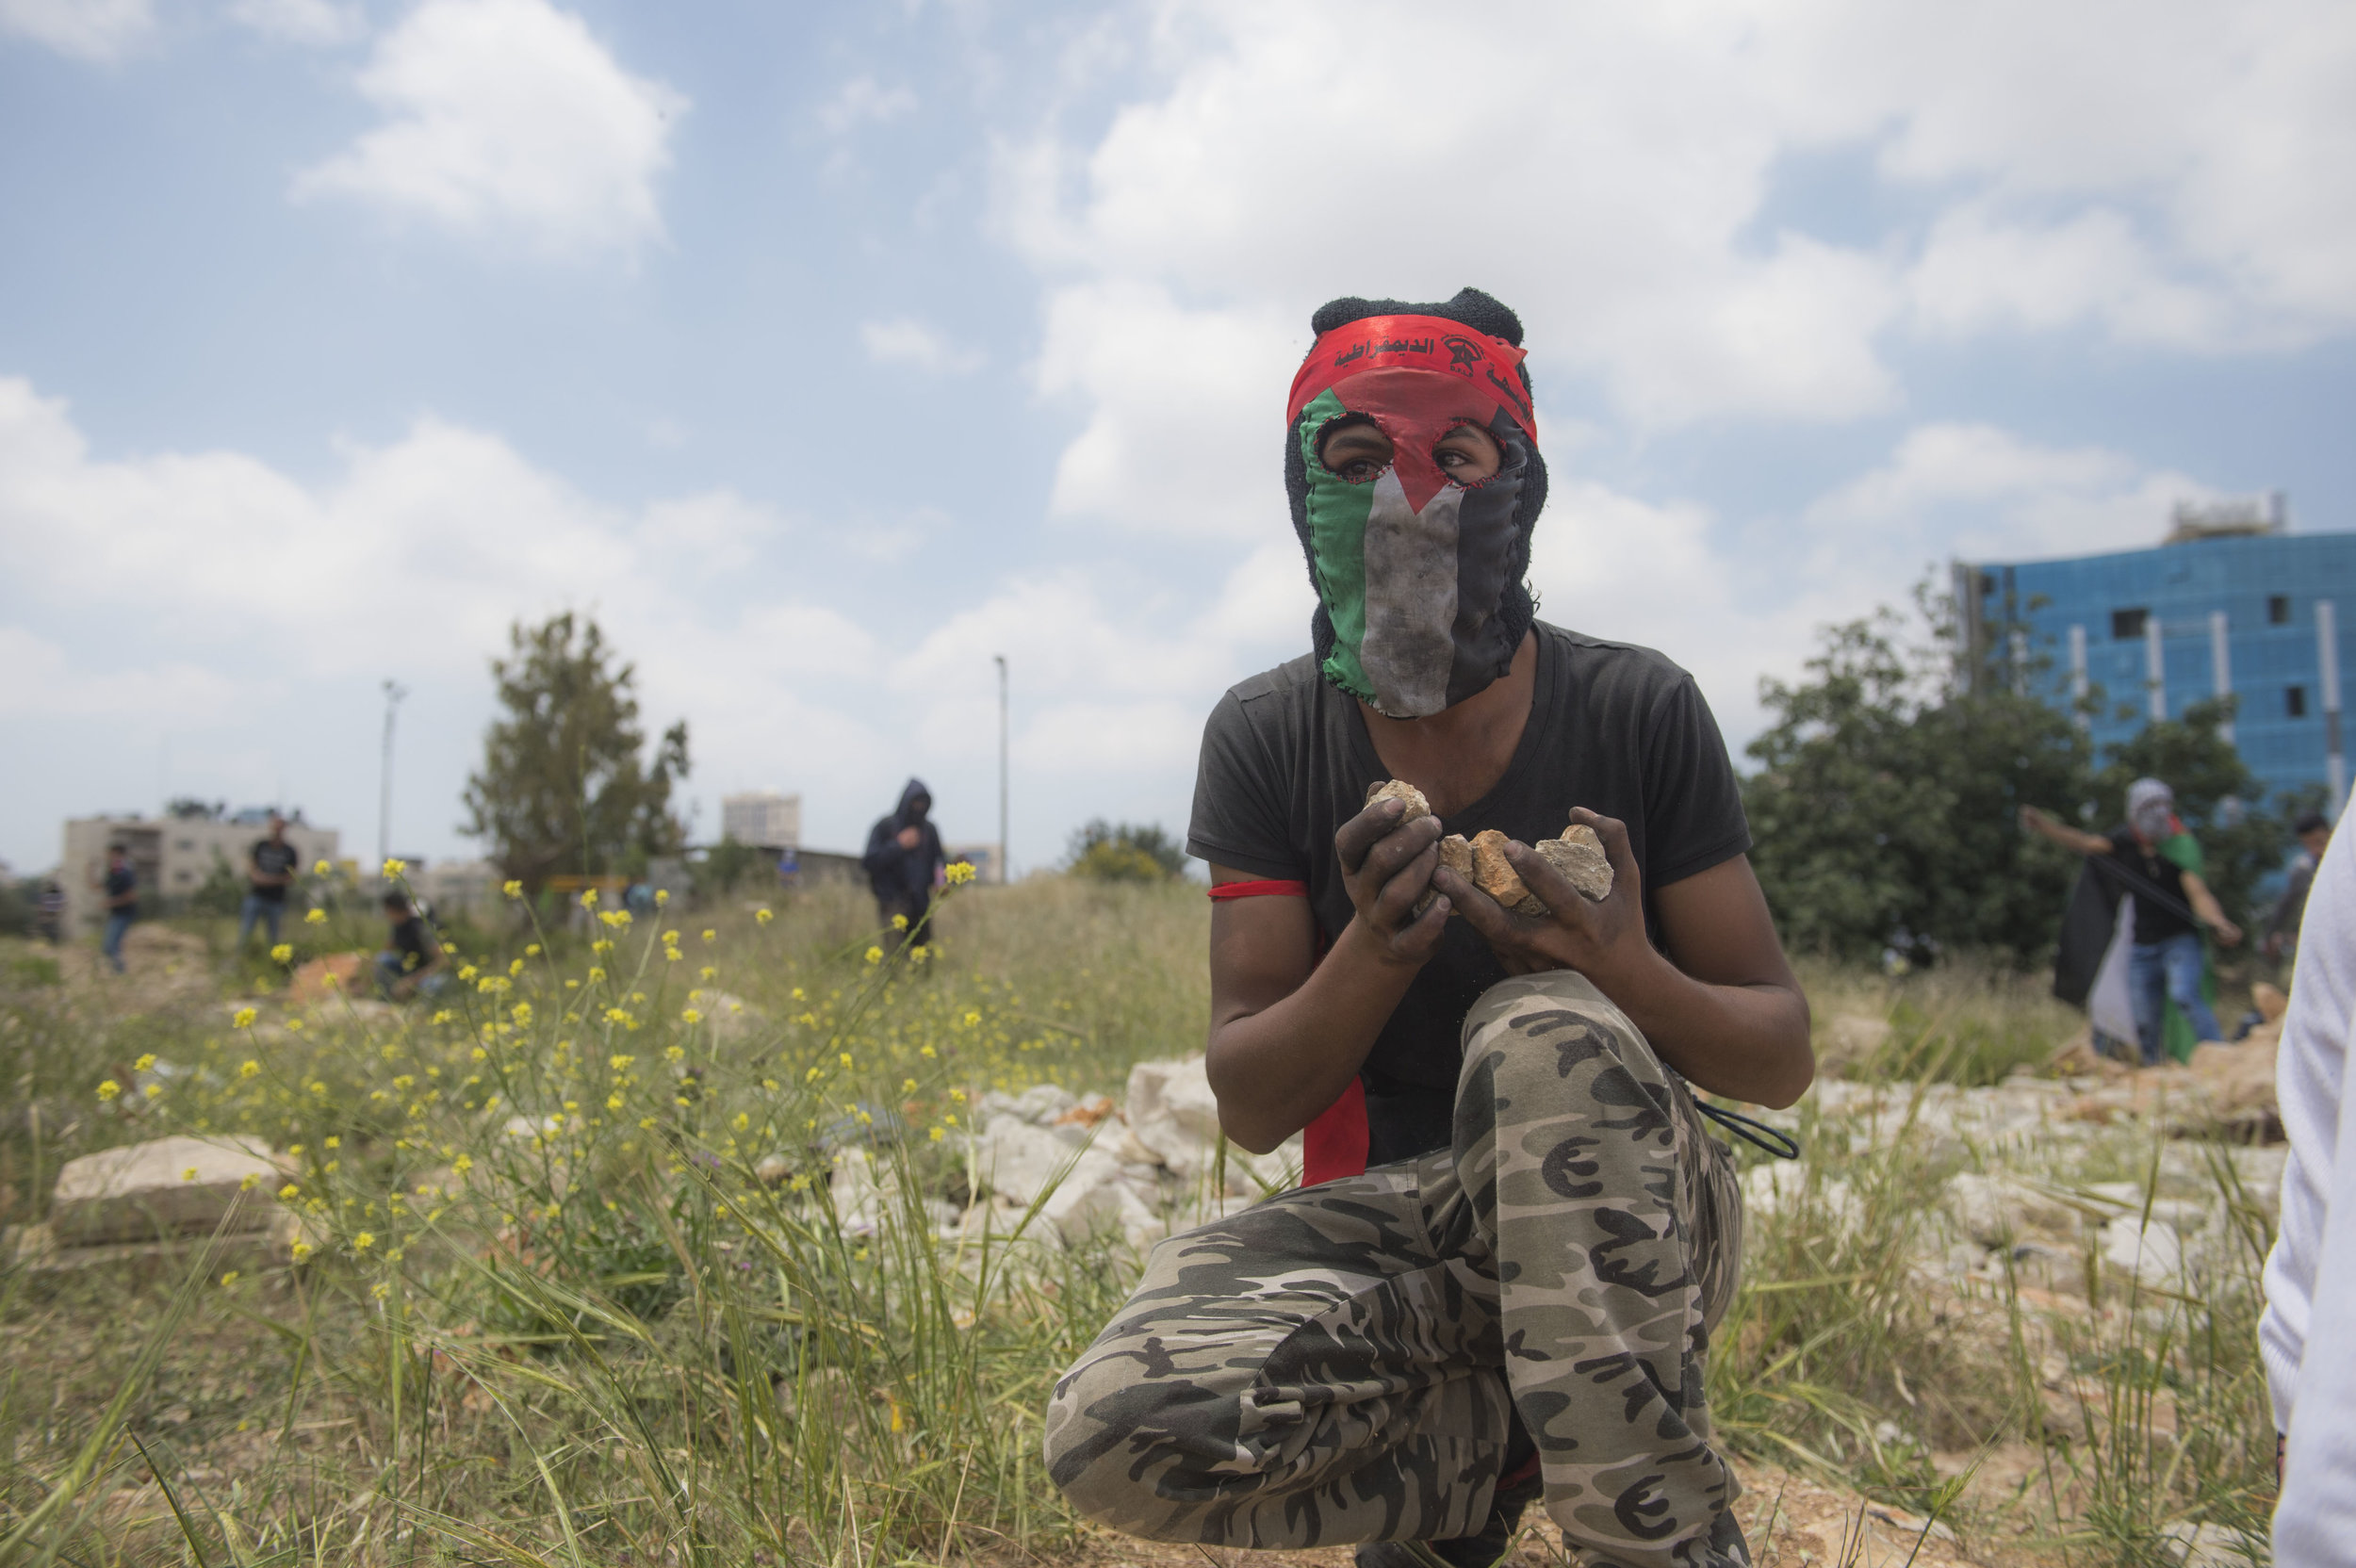 0515_2018_Hatcher_NakbaProtests_039.JPG